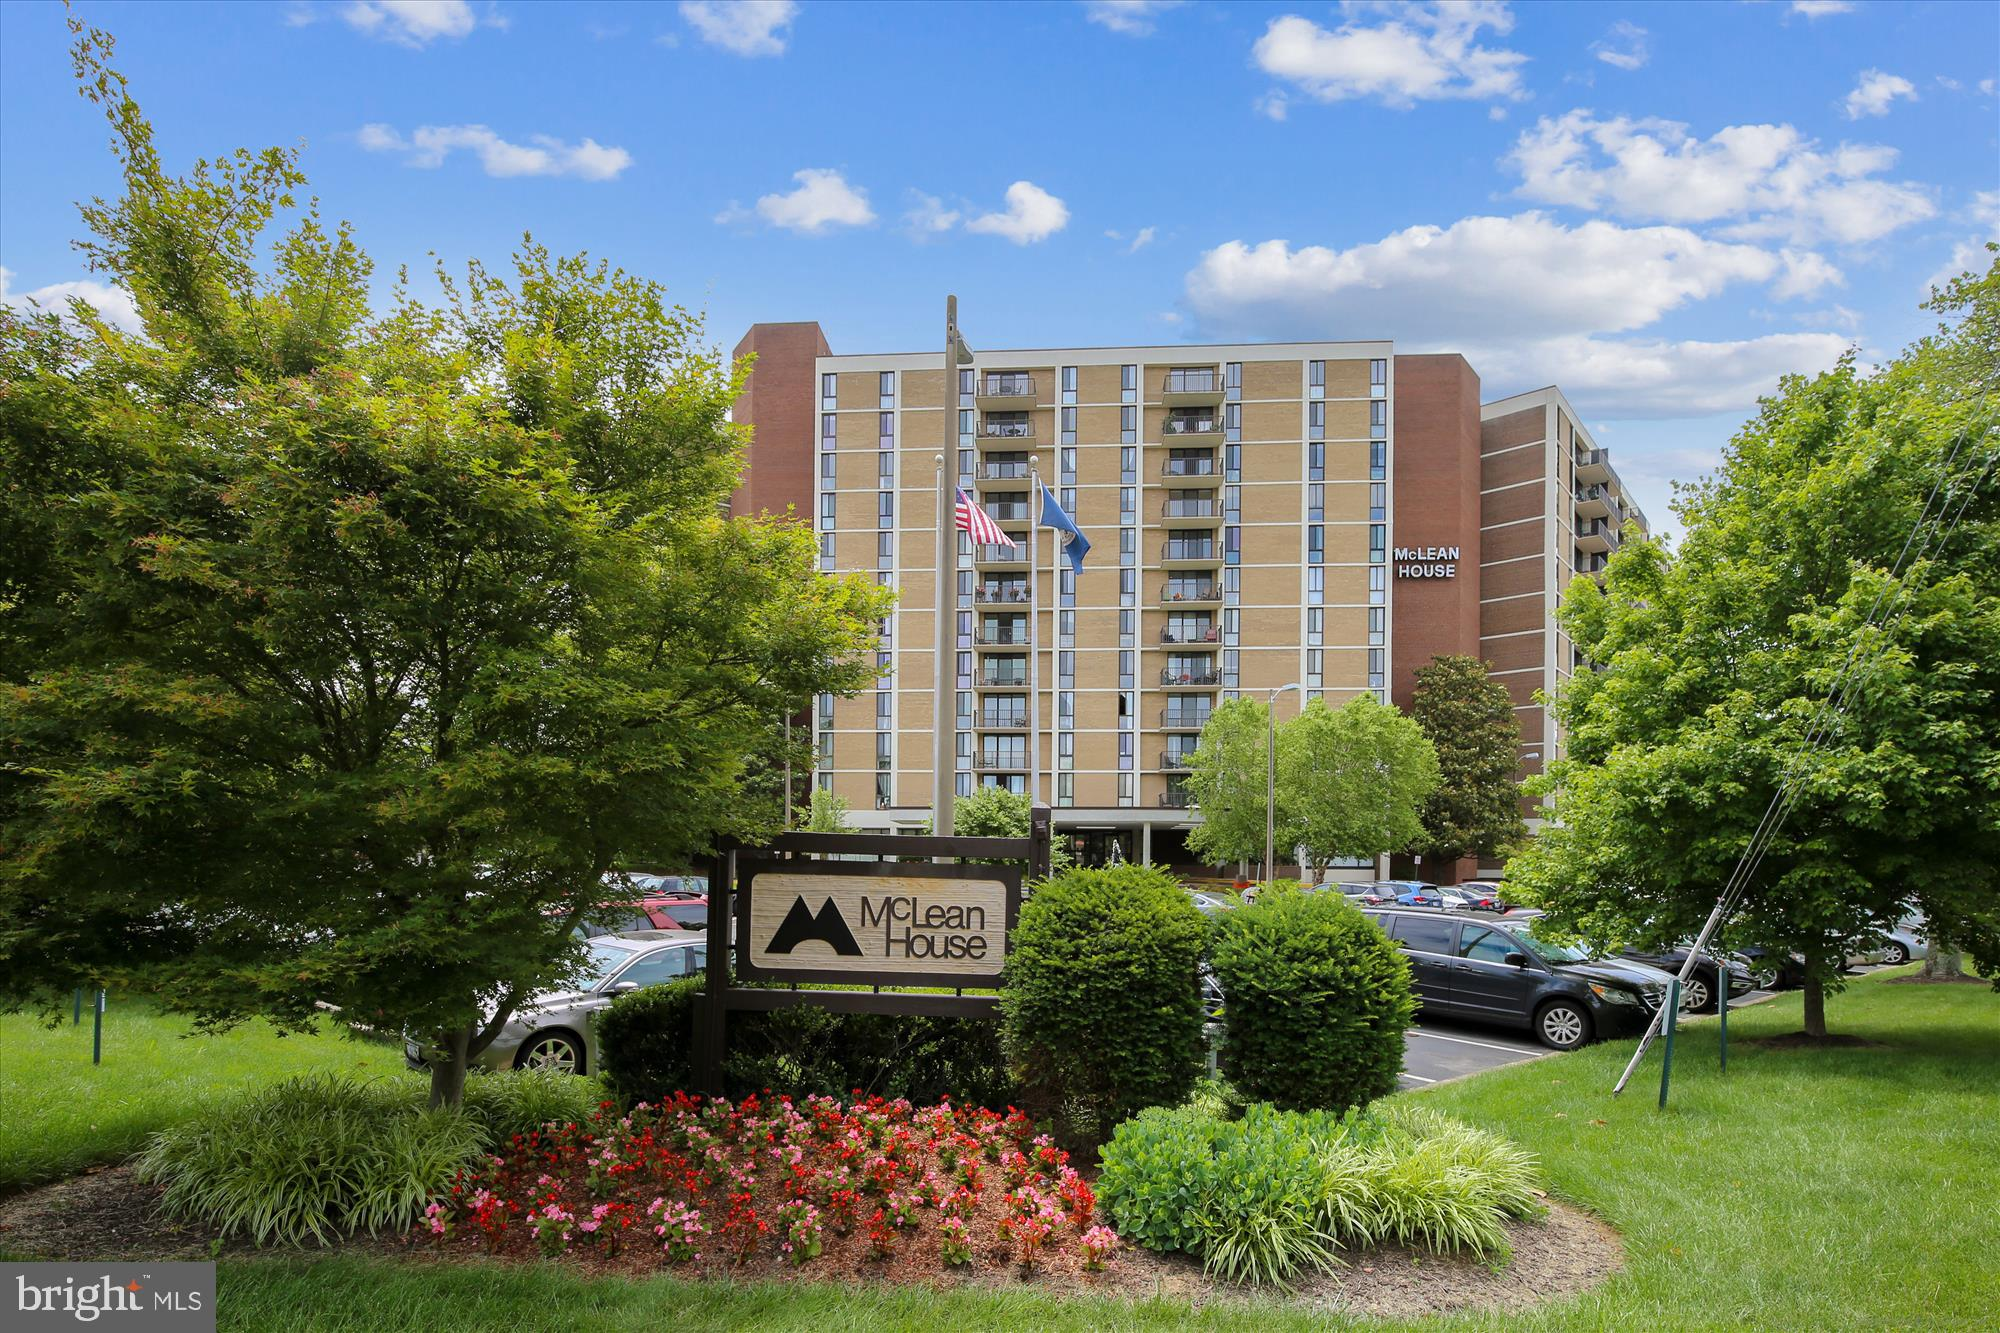 *BEAUTIFUL and SPACIOUS* 2BR/2BA unit in sought-after McLean House location!  This well-maintained,